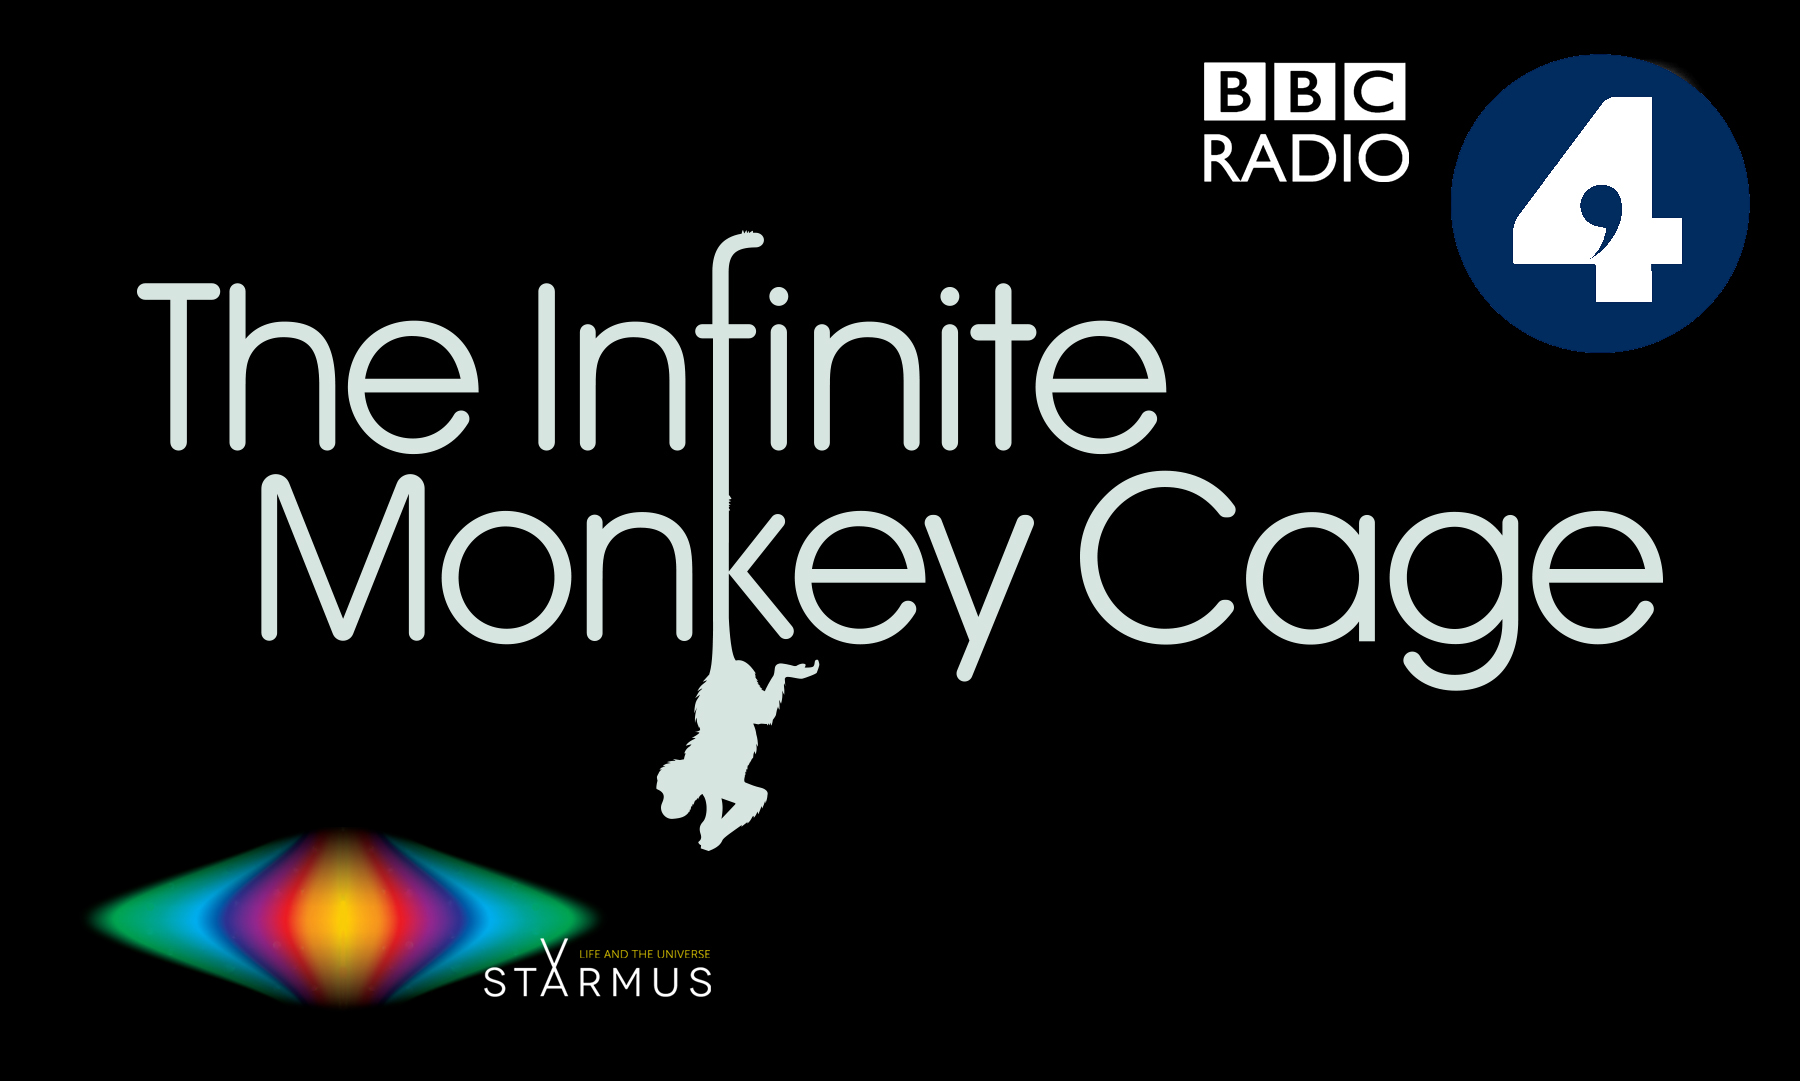 Brian Cox & Robin Ince to host Radio 4's The Infinite Monkey Cage at Starmus